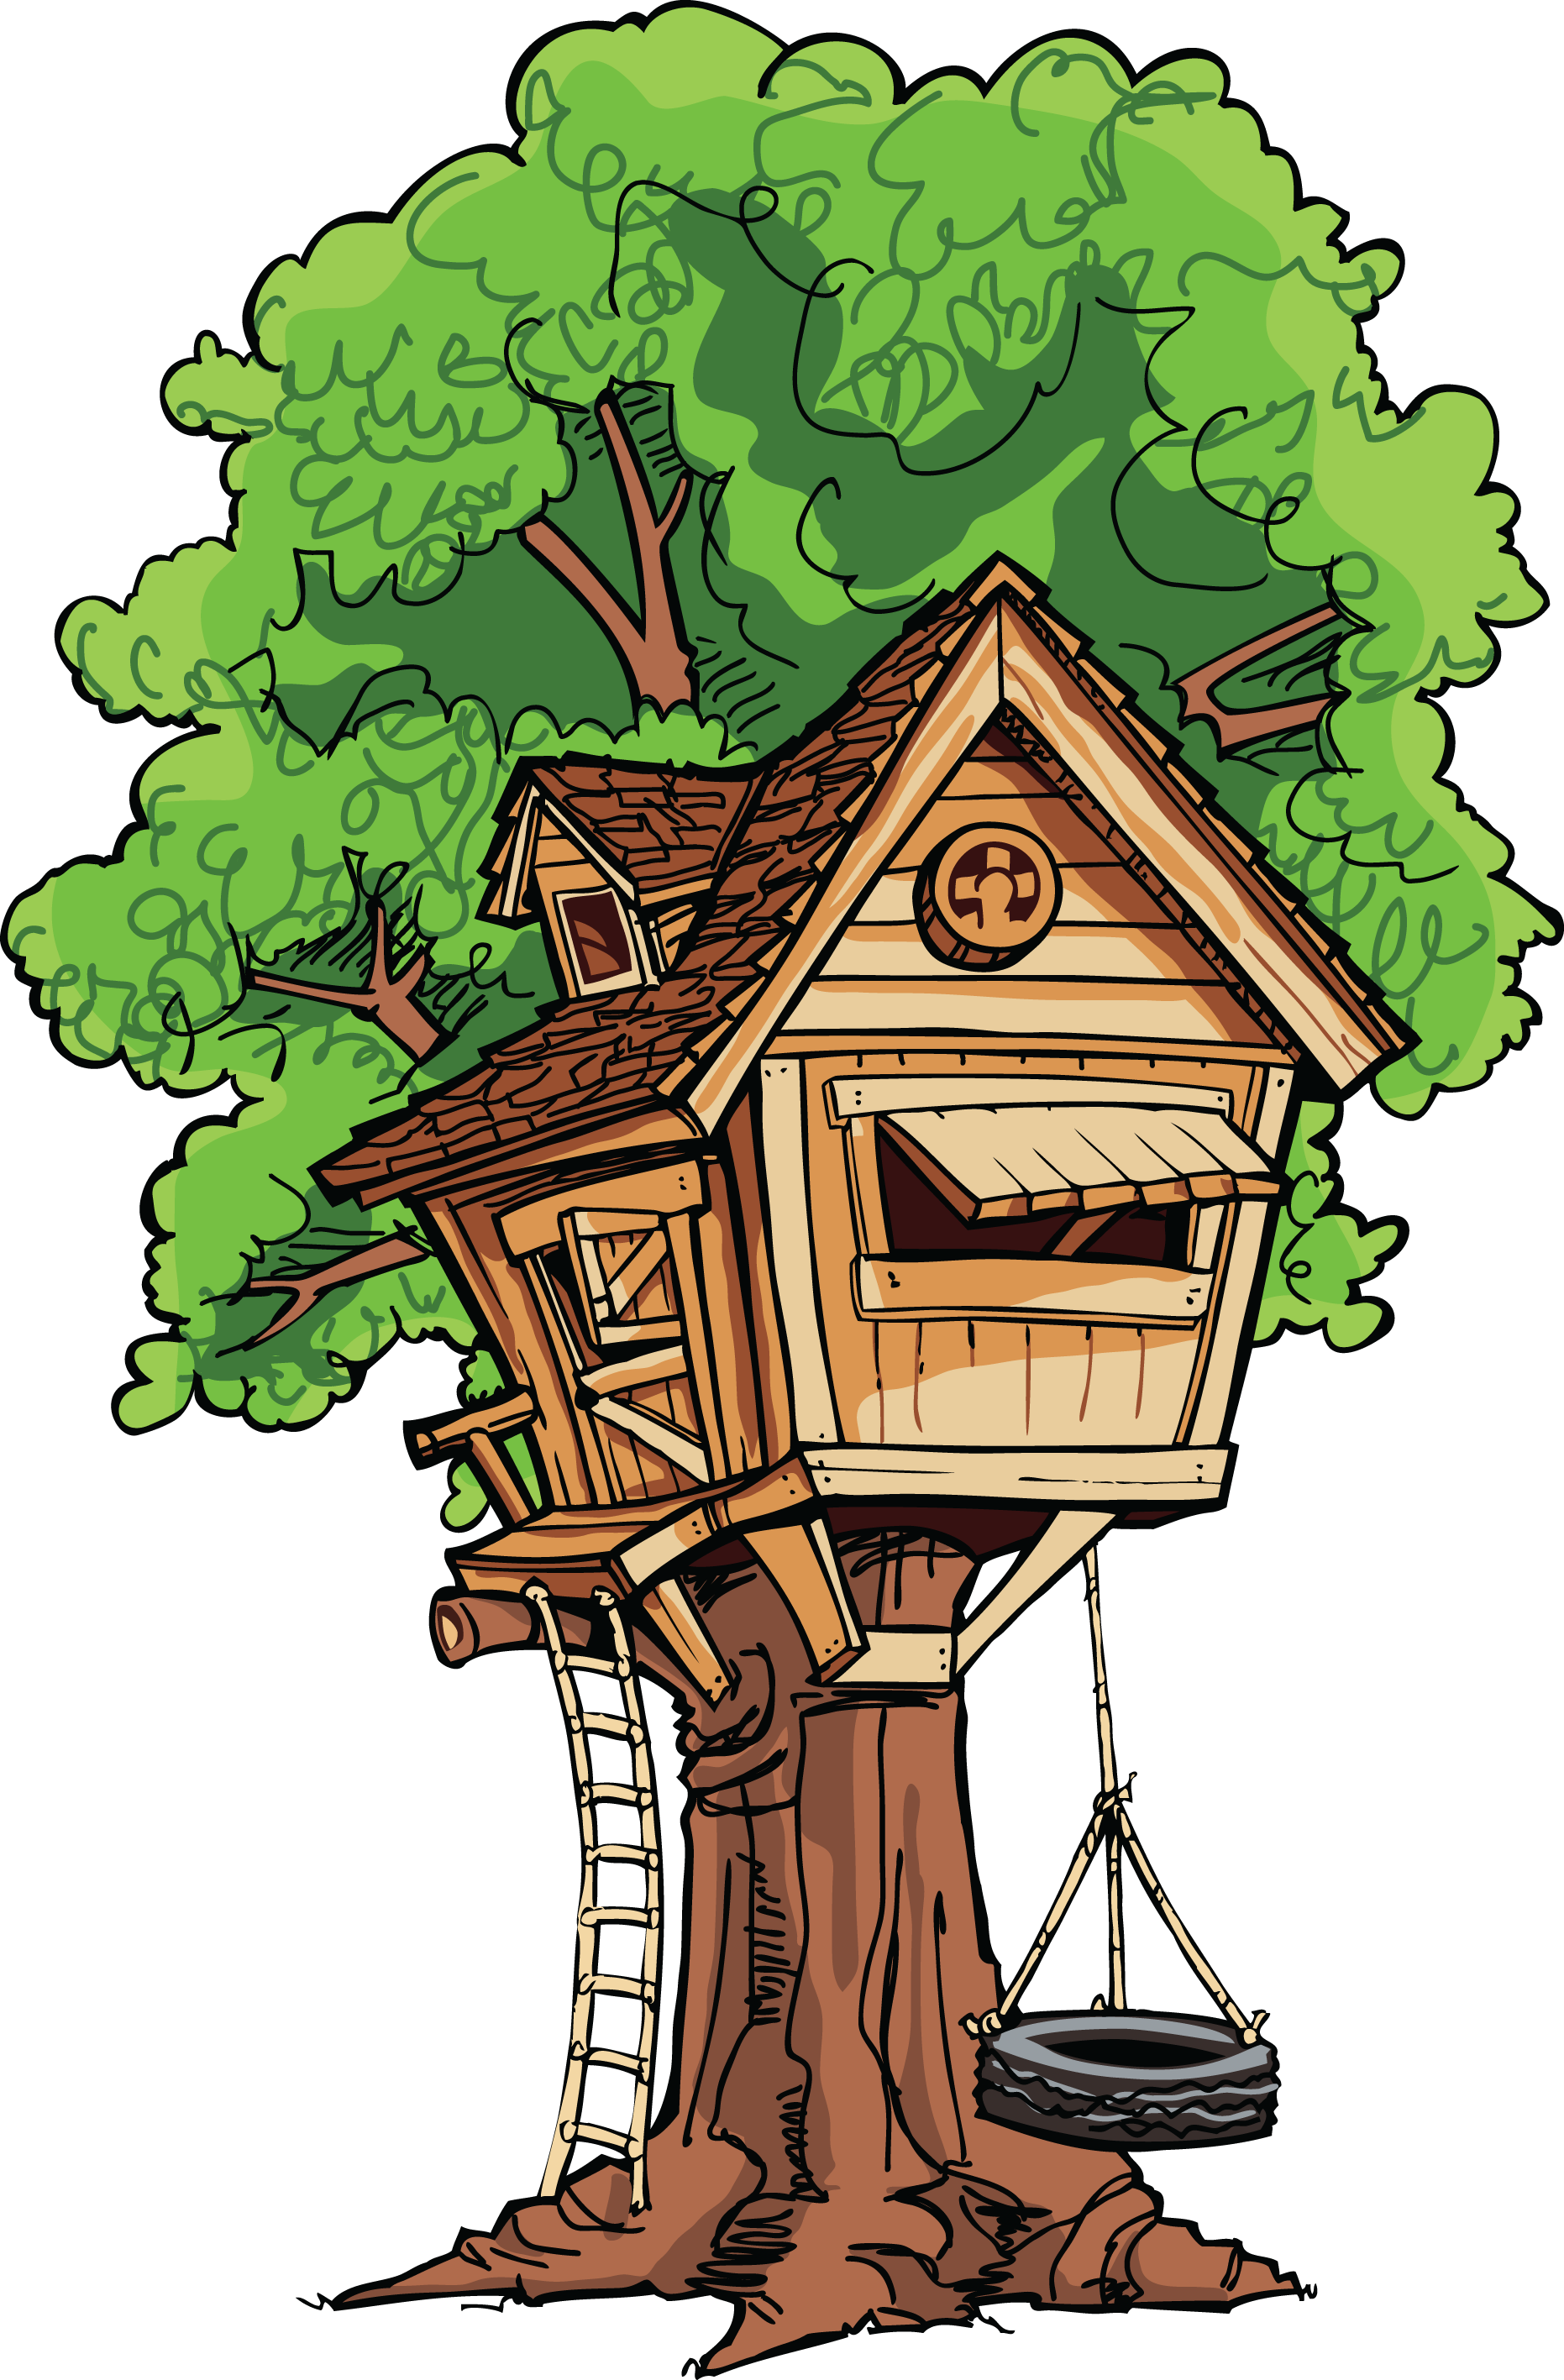 A tree house with a tire swing.